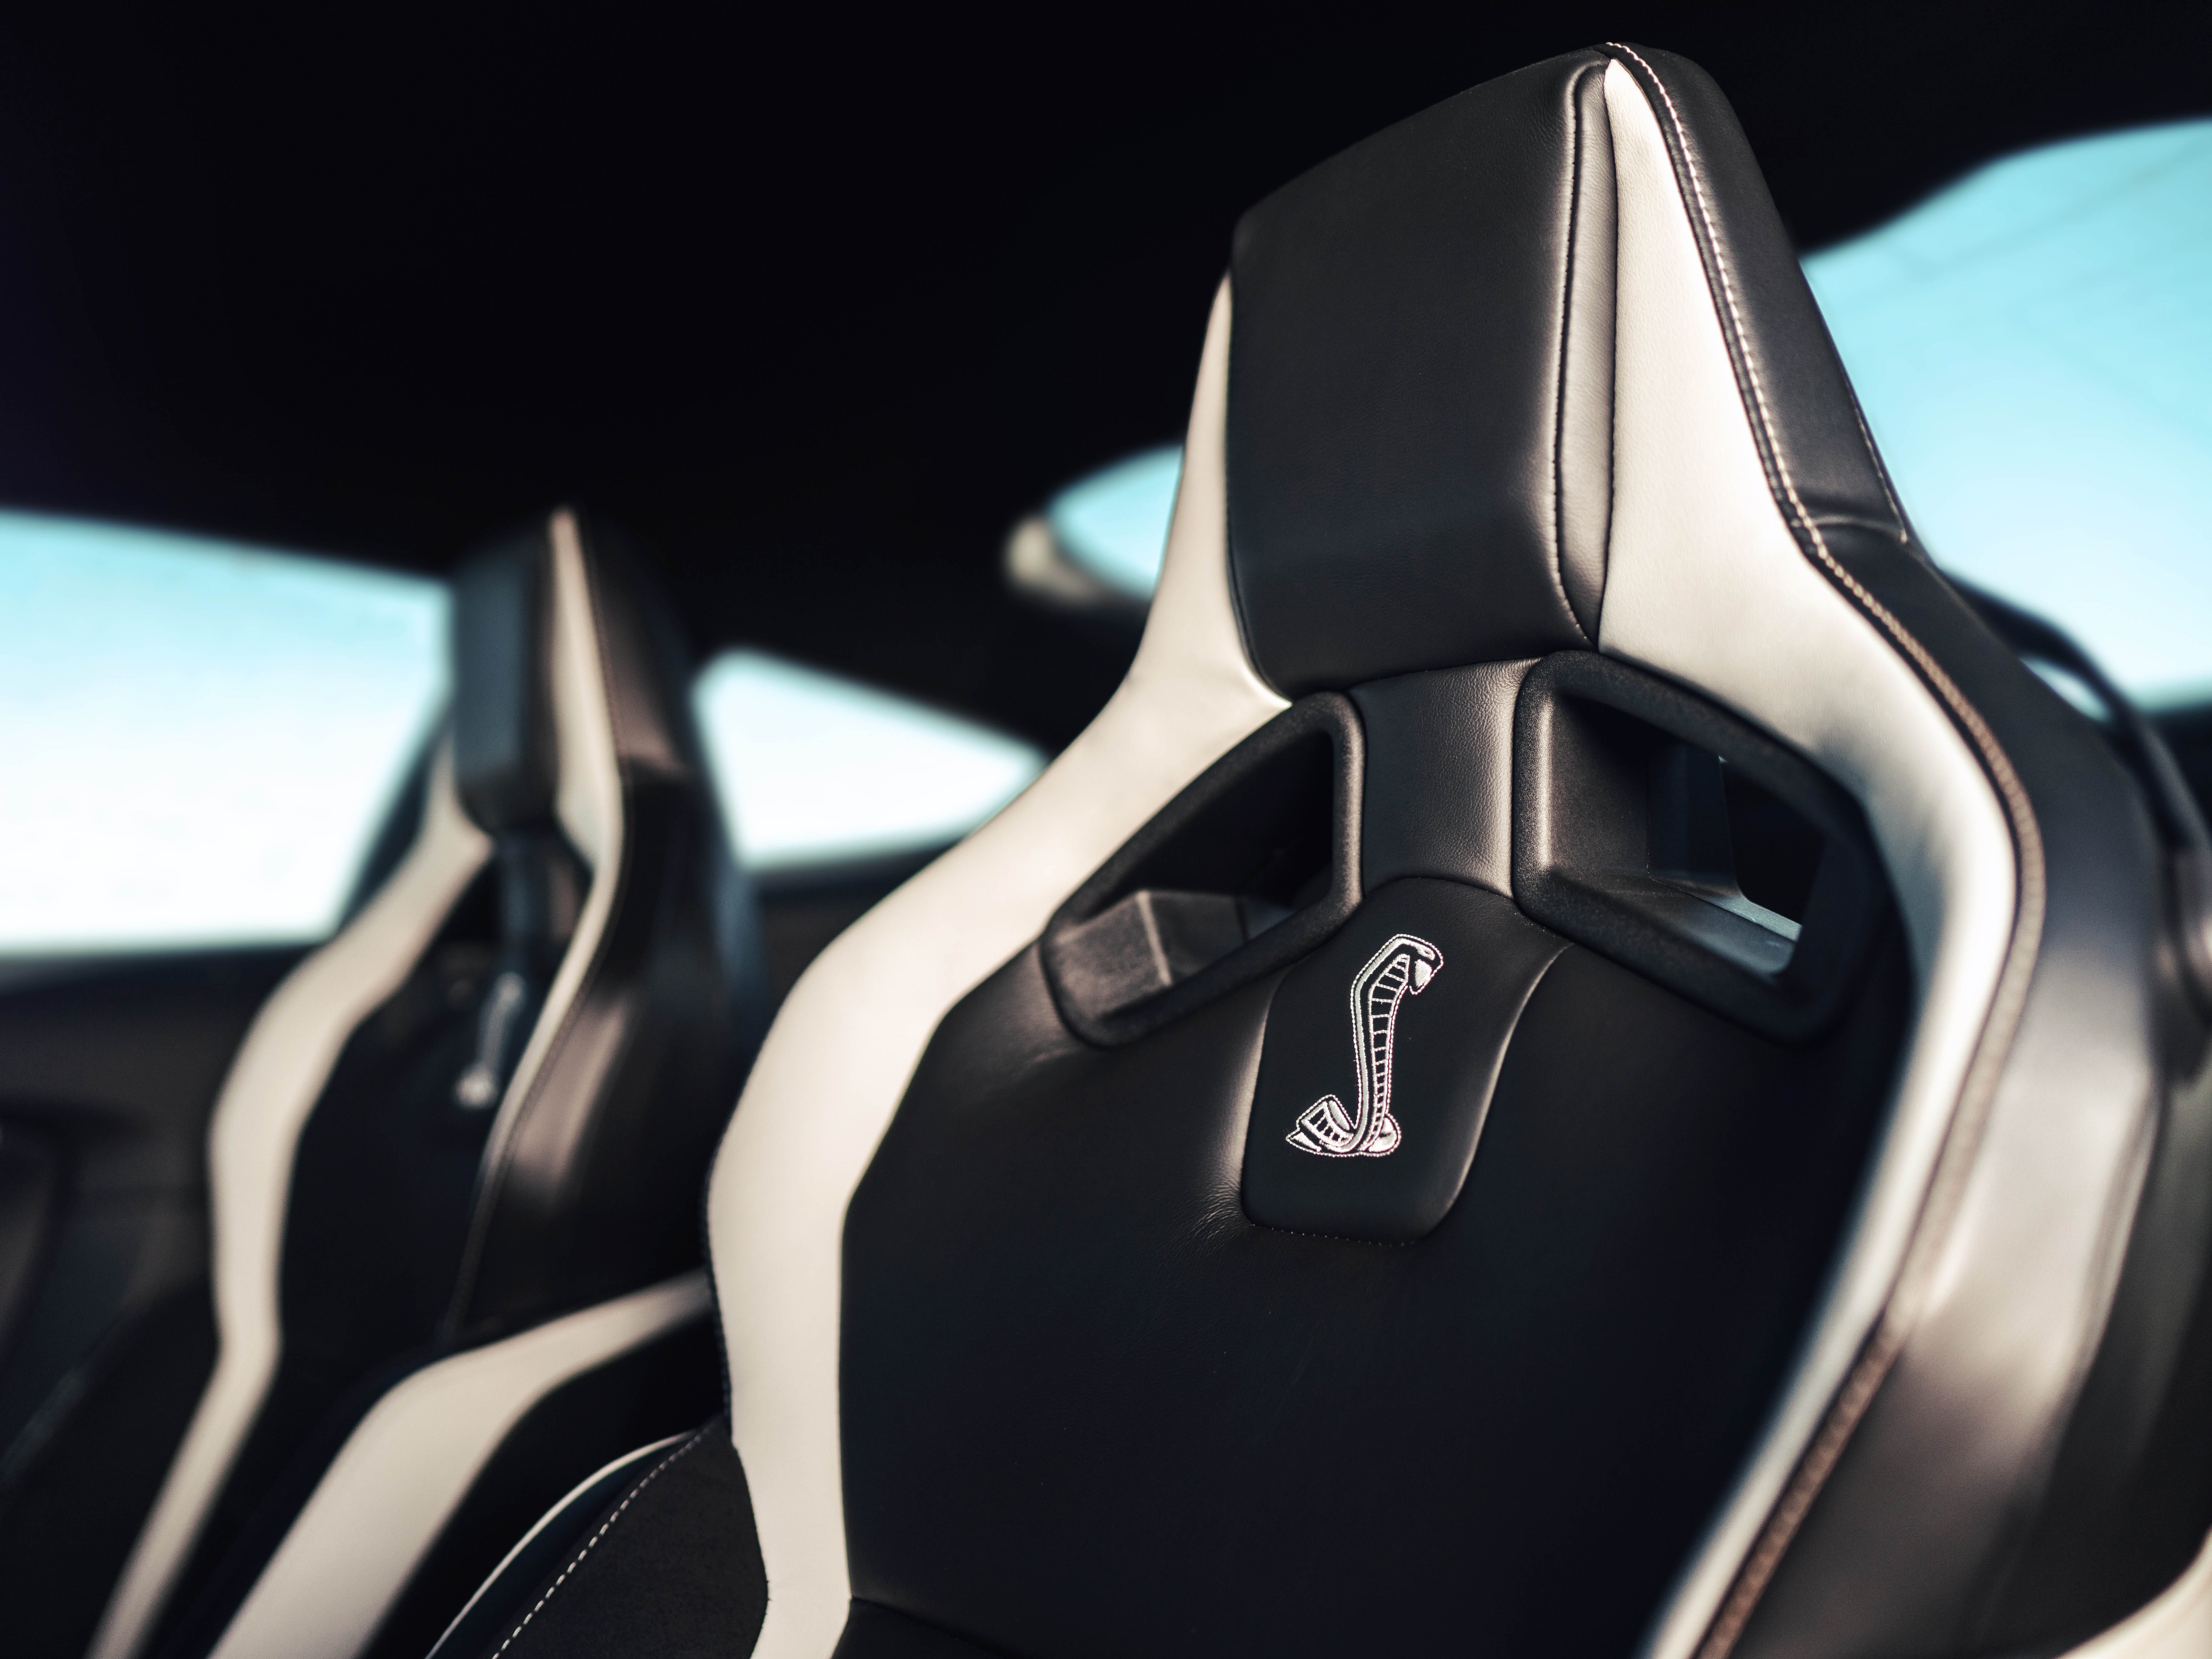 These are the specialized seats in the new Mustang GT500.